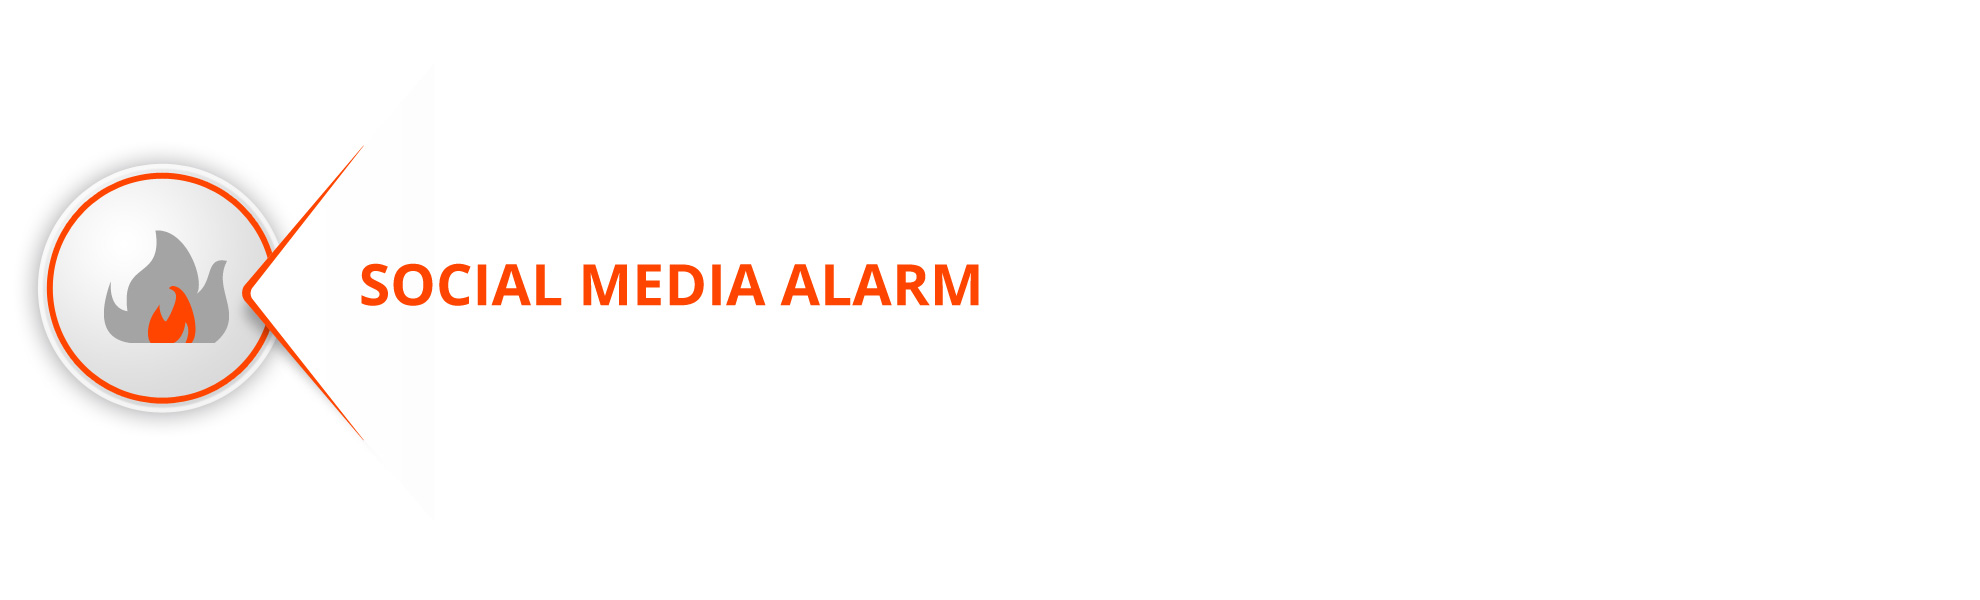 social-media-alarm-azobit